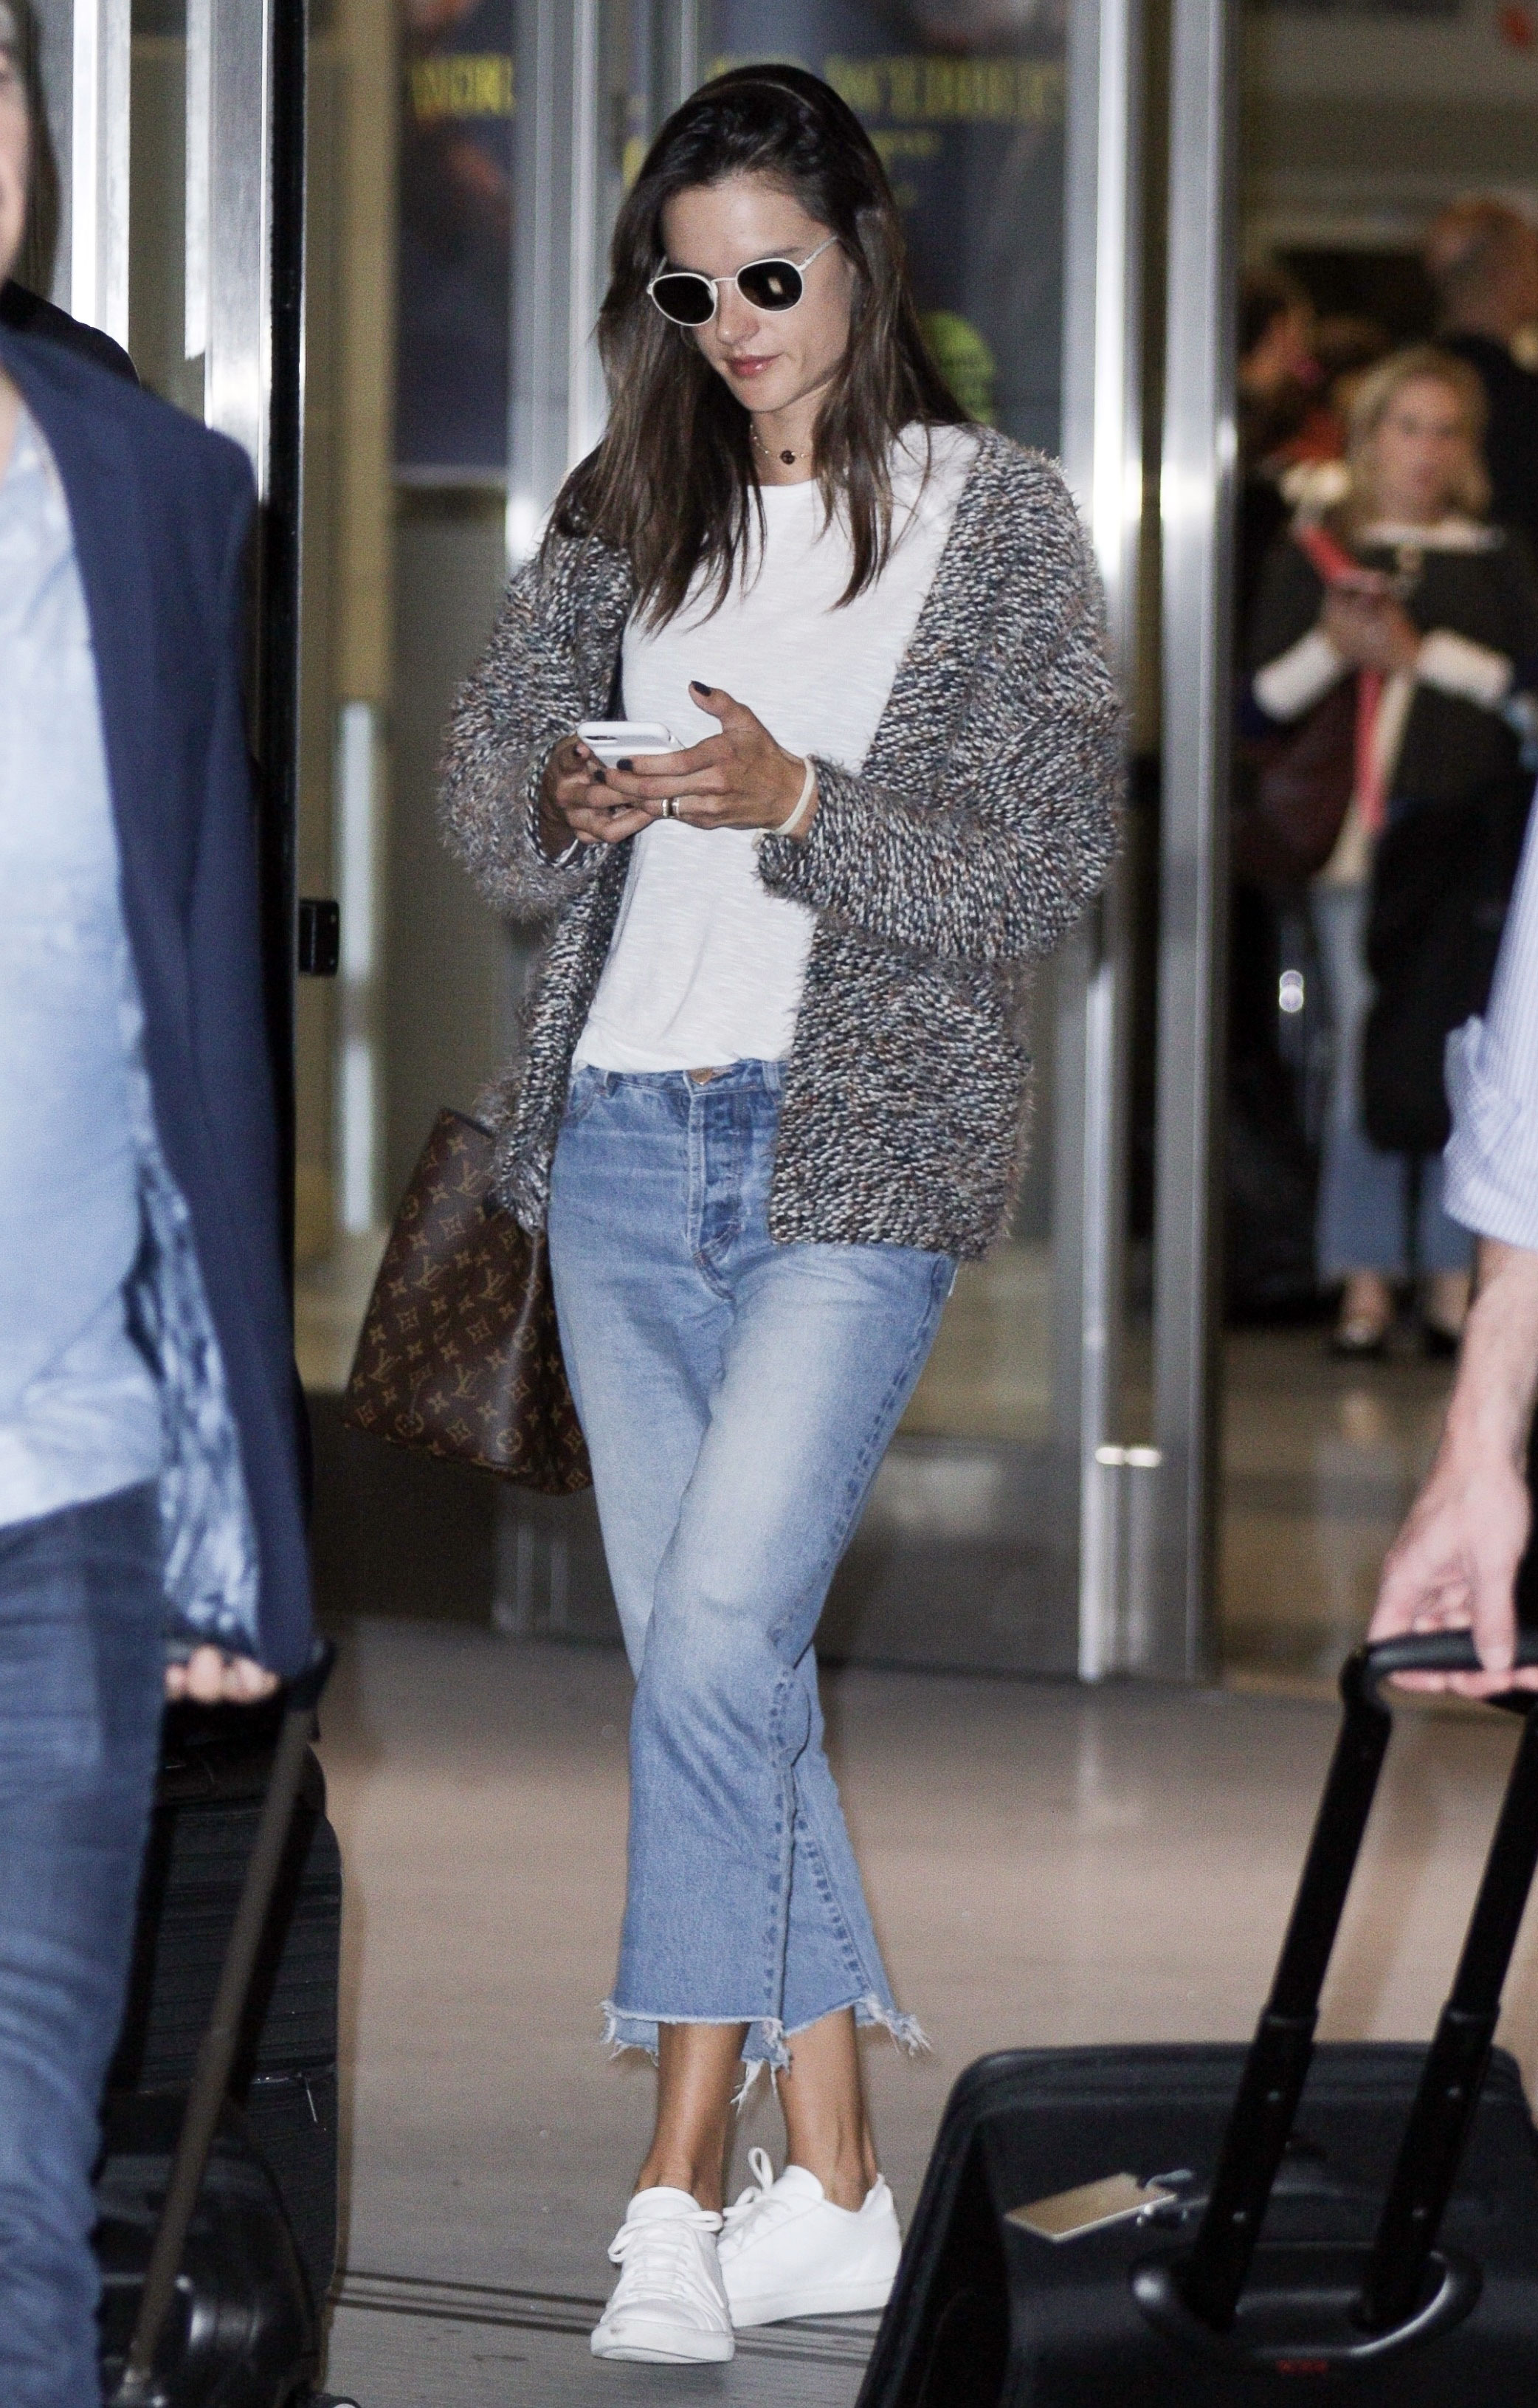 Alessandra Ambrosio wears a chunky knit cardigan with crop jeans and white sneakers while traveling through the airport.